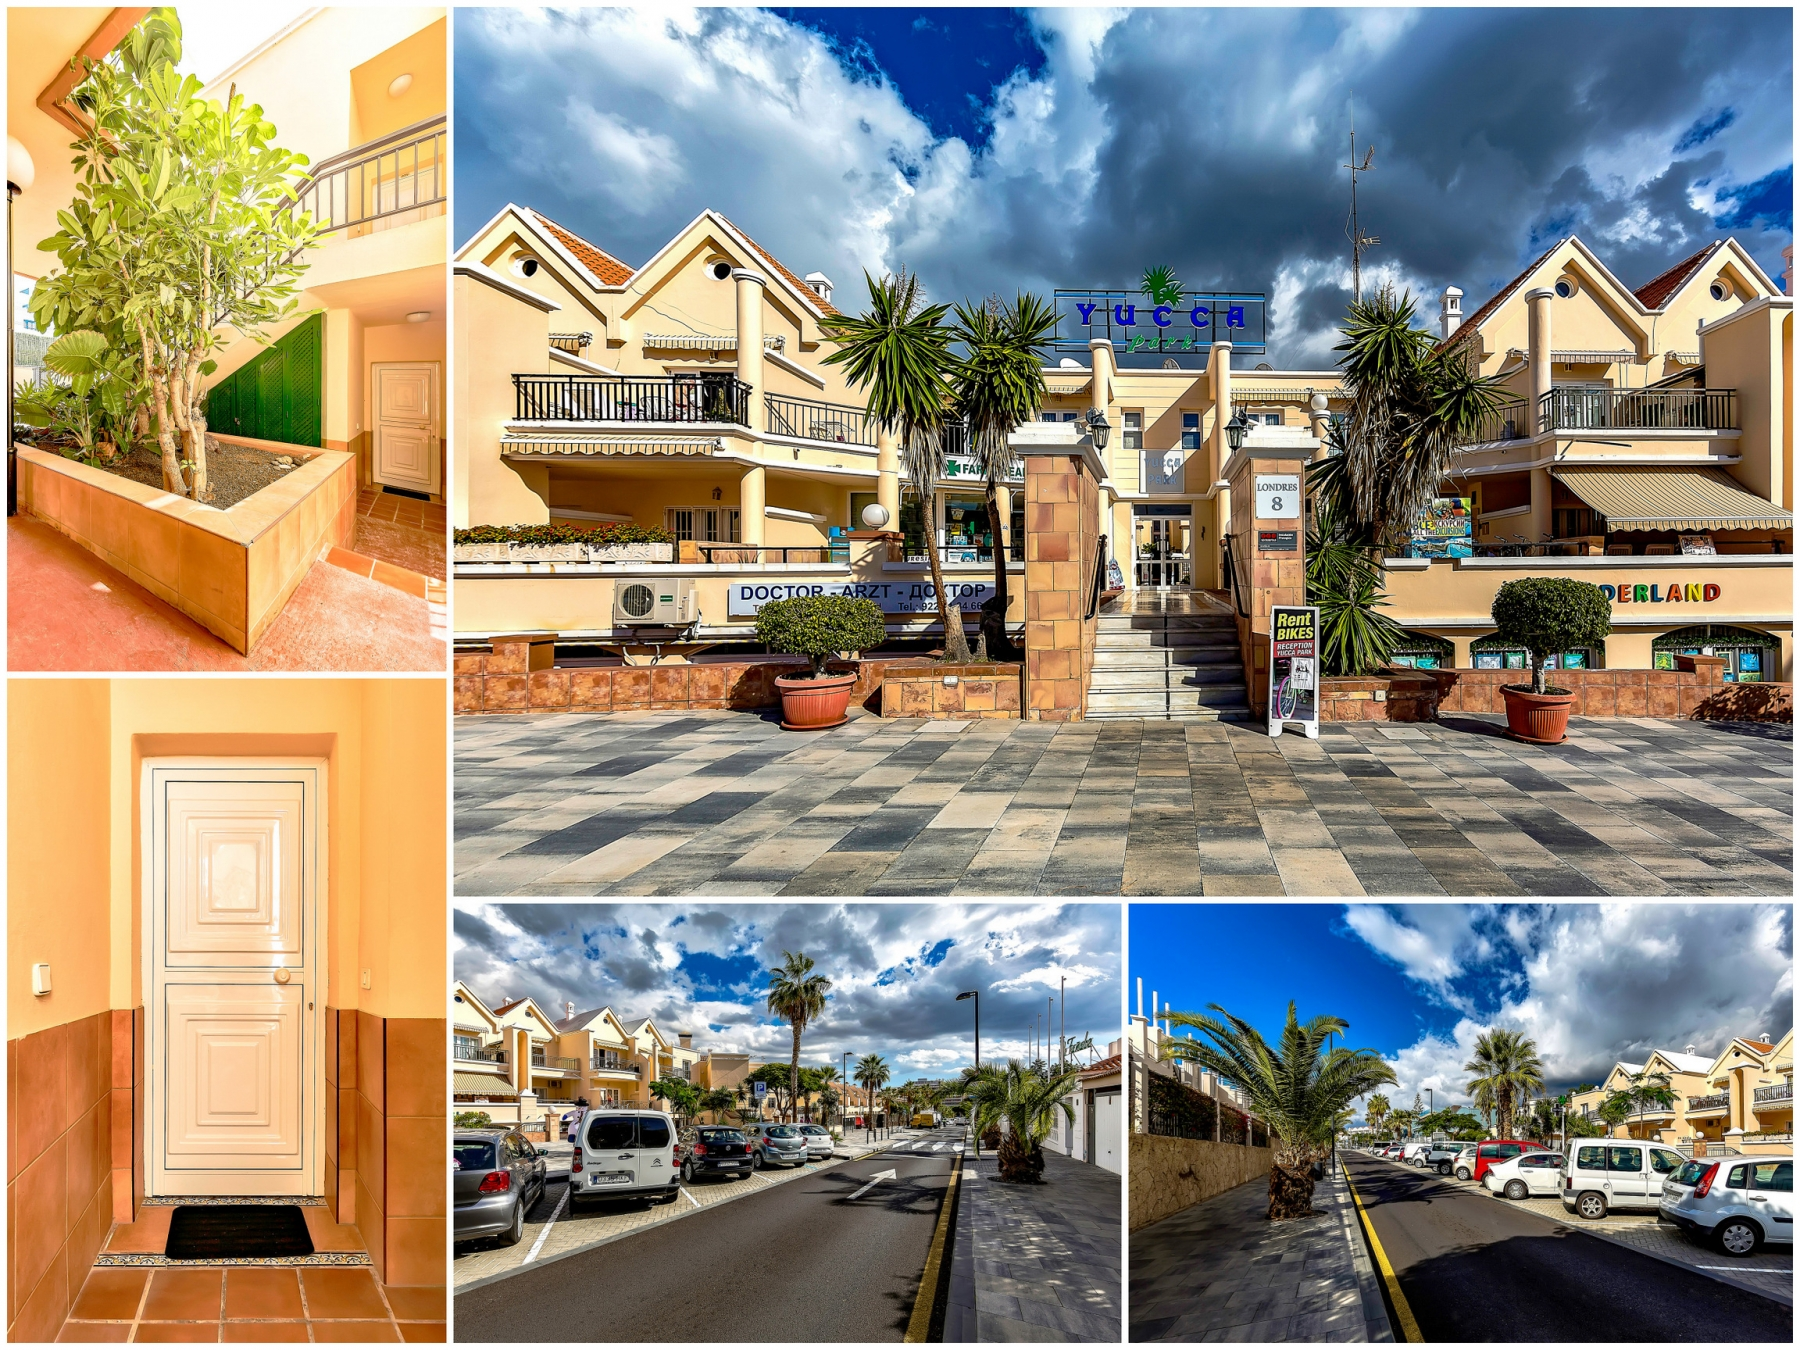 Properties for Sale in Tenerife, Canary Islands, Spain | SylkWayStar Real Estate. 1 bedroom apartment Yucca Park. Image-22620